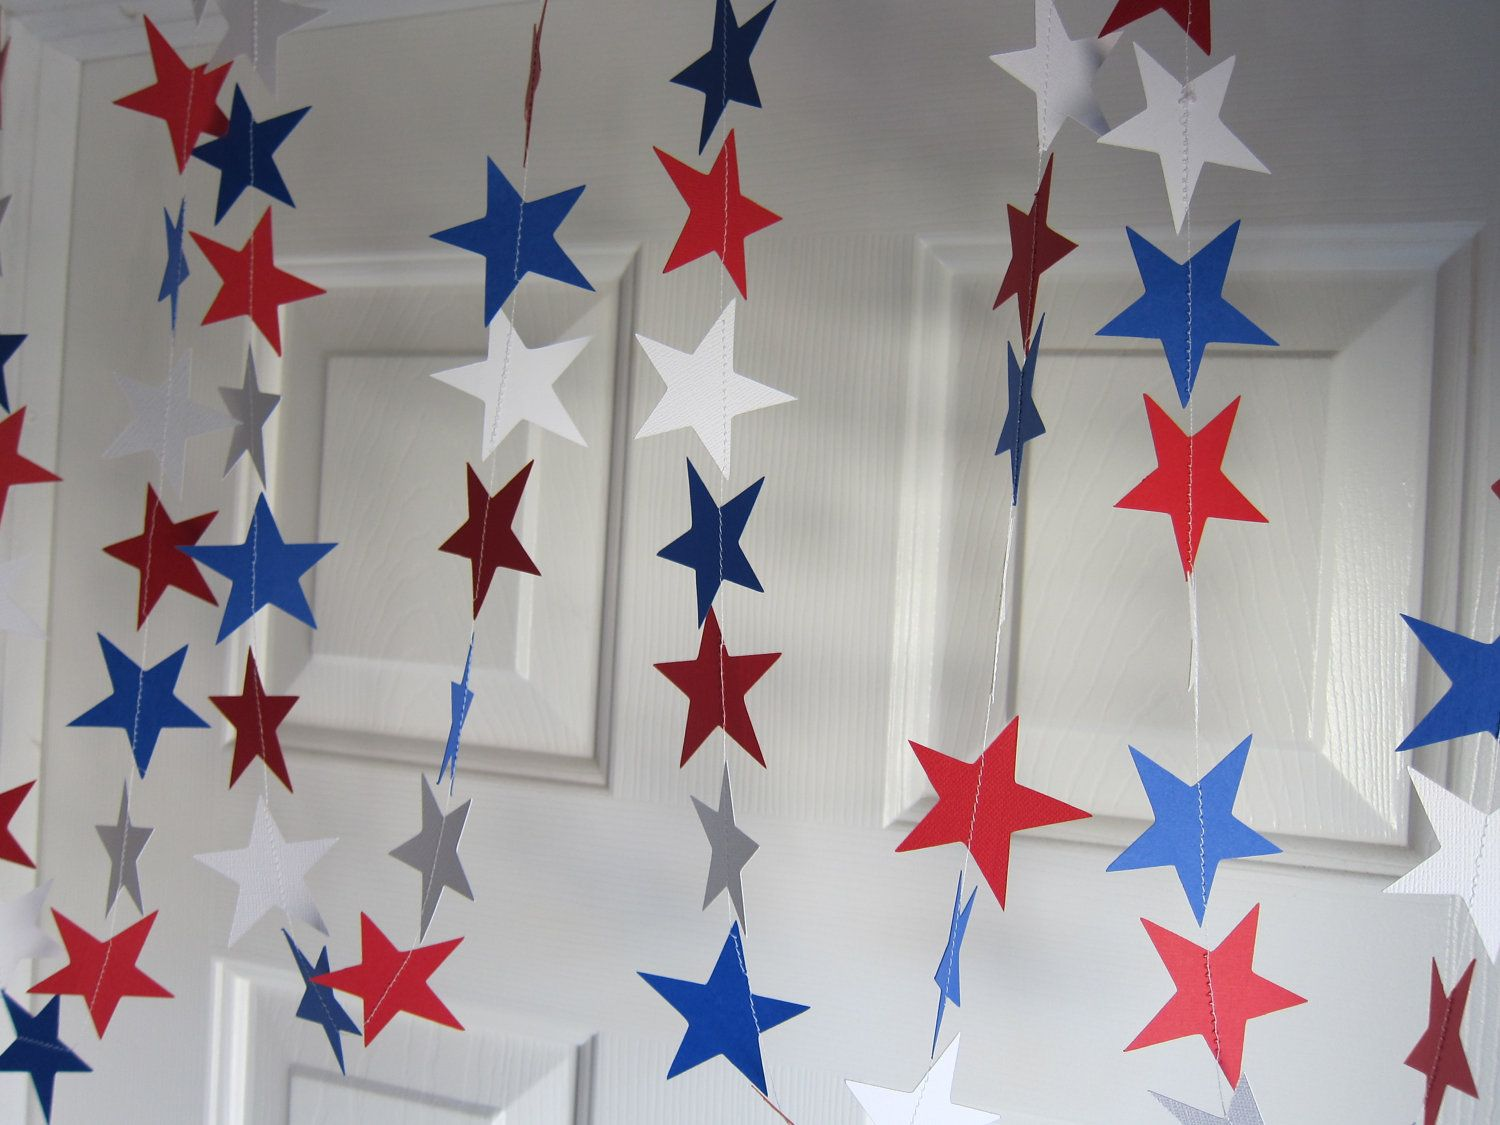 Star Paper Garland, July 4th Decorations, BBQ Decoration, American ...